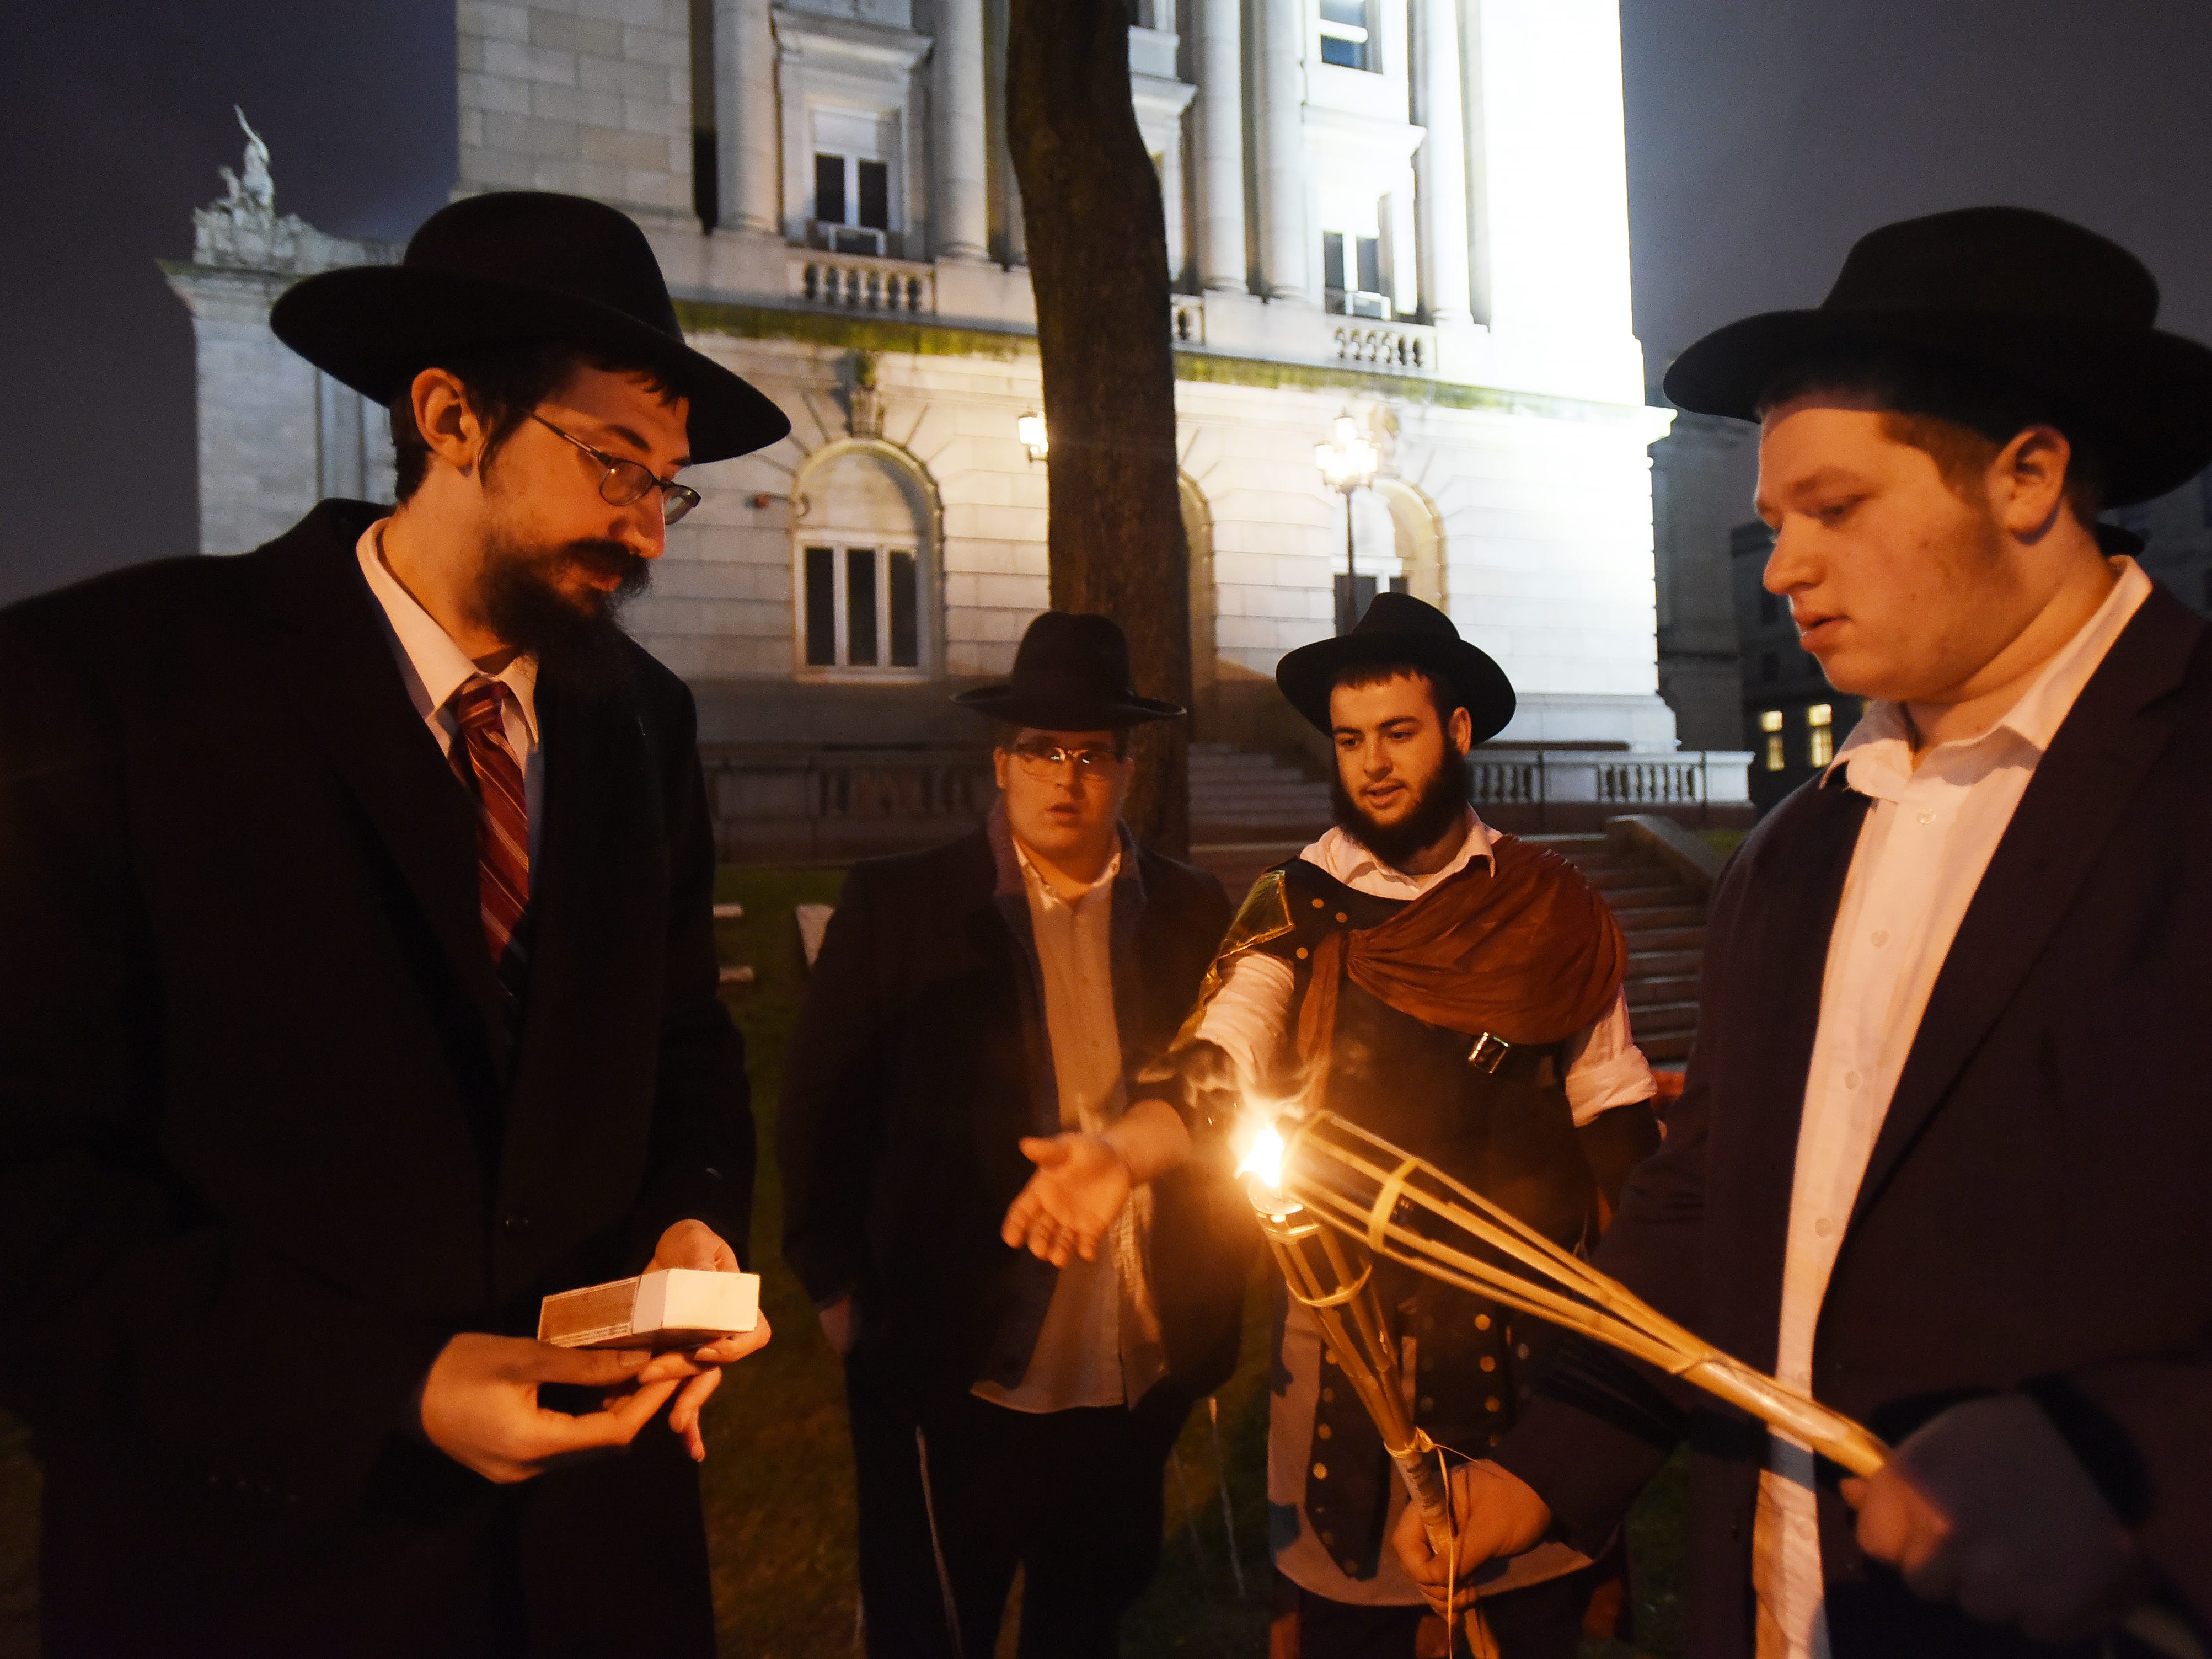 Members of Chabad of Hackensack, light a torch as Rabbi Mendy Kaminker (L) looks on prior the lighting ceremony to celebrate the 2018 Hanukkah season at the front lawn of Bergen County Courthouse in Hackensack on 12/02/18.